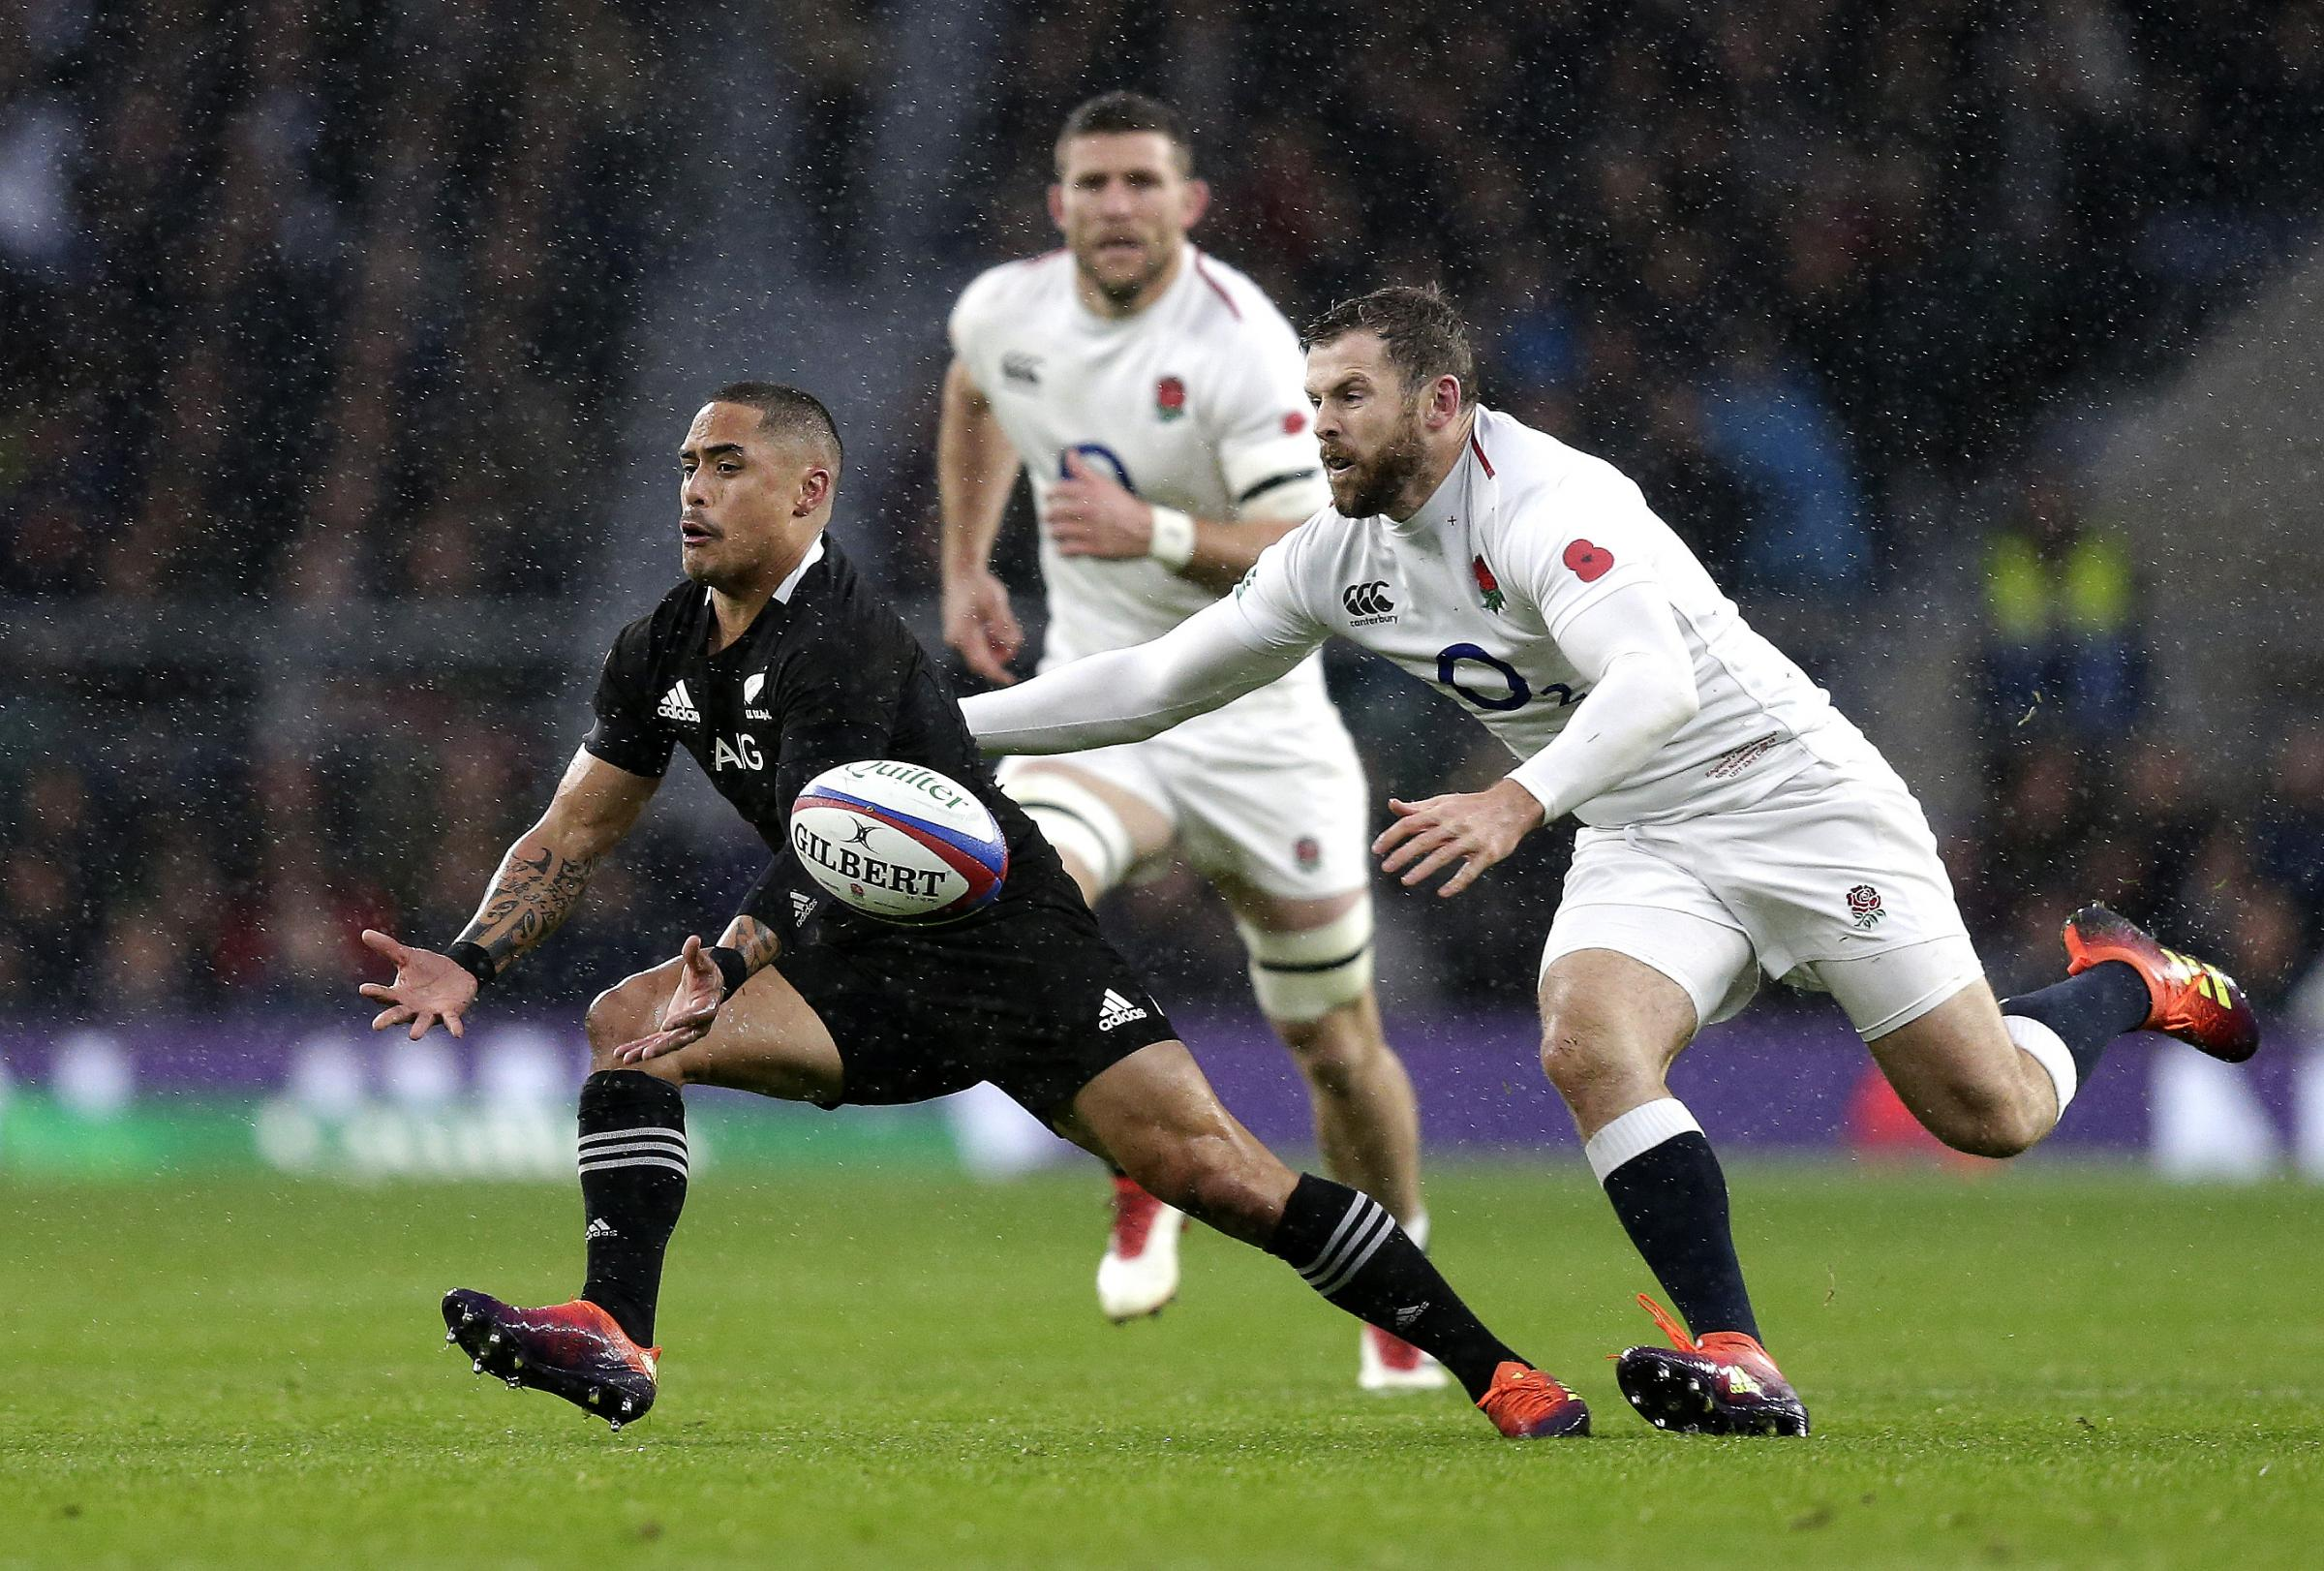 Daly in action against the Kiwis (RFU Collection via Getty Images)